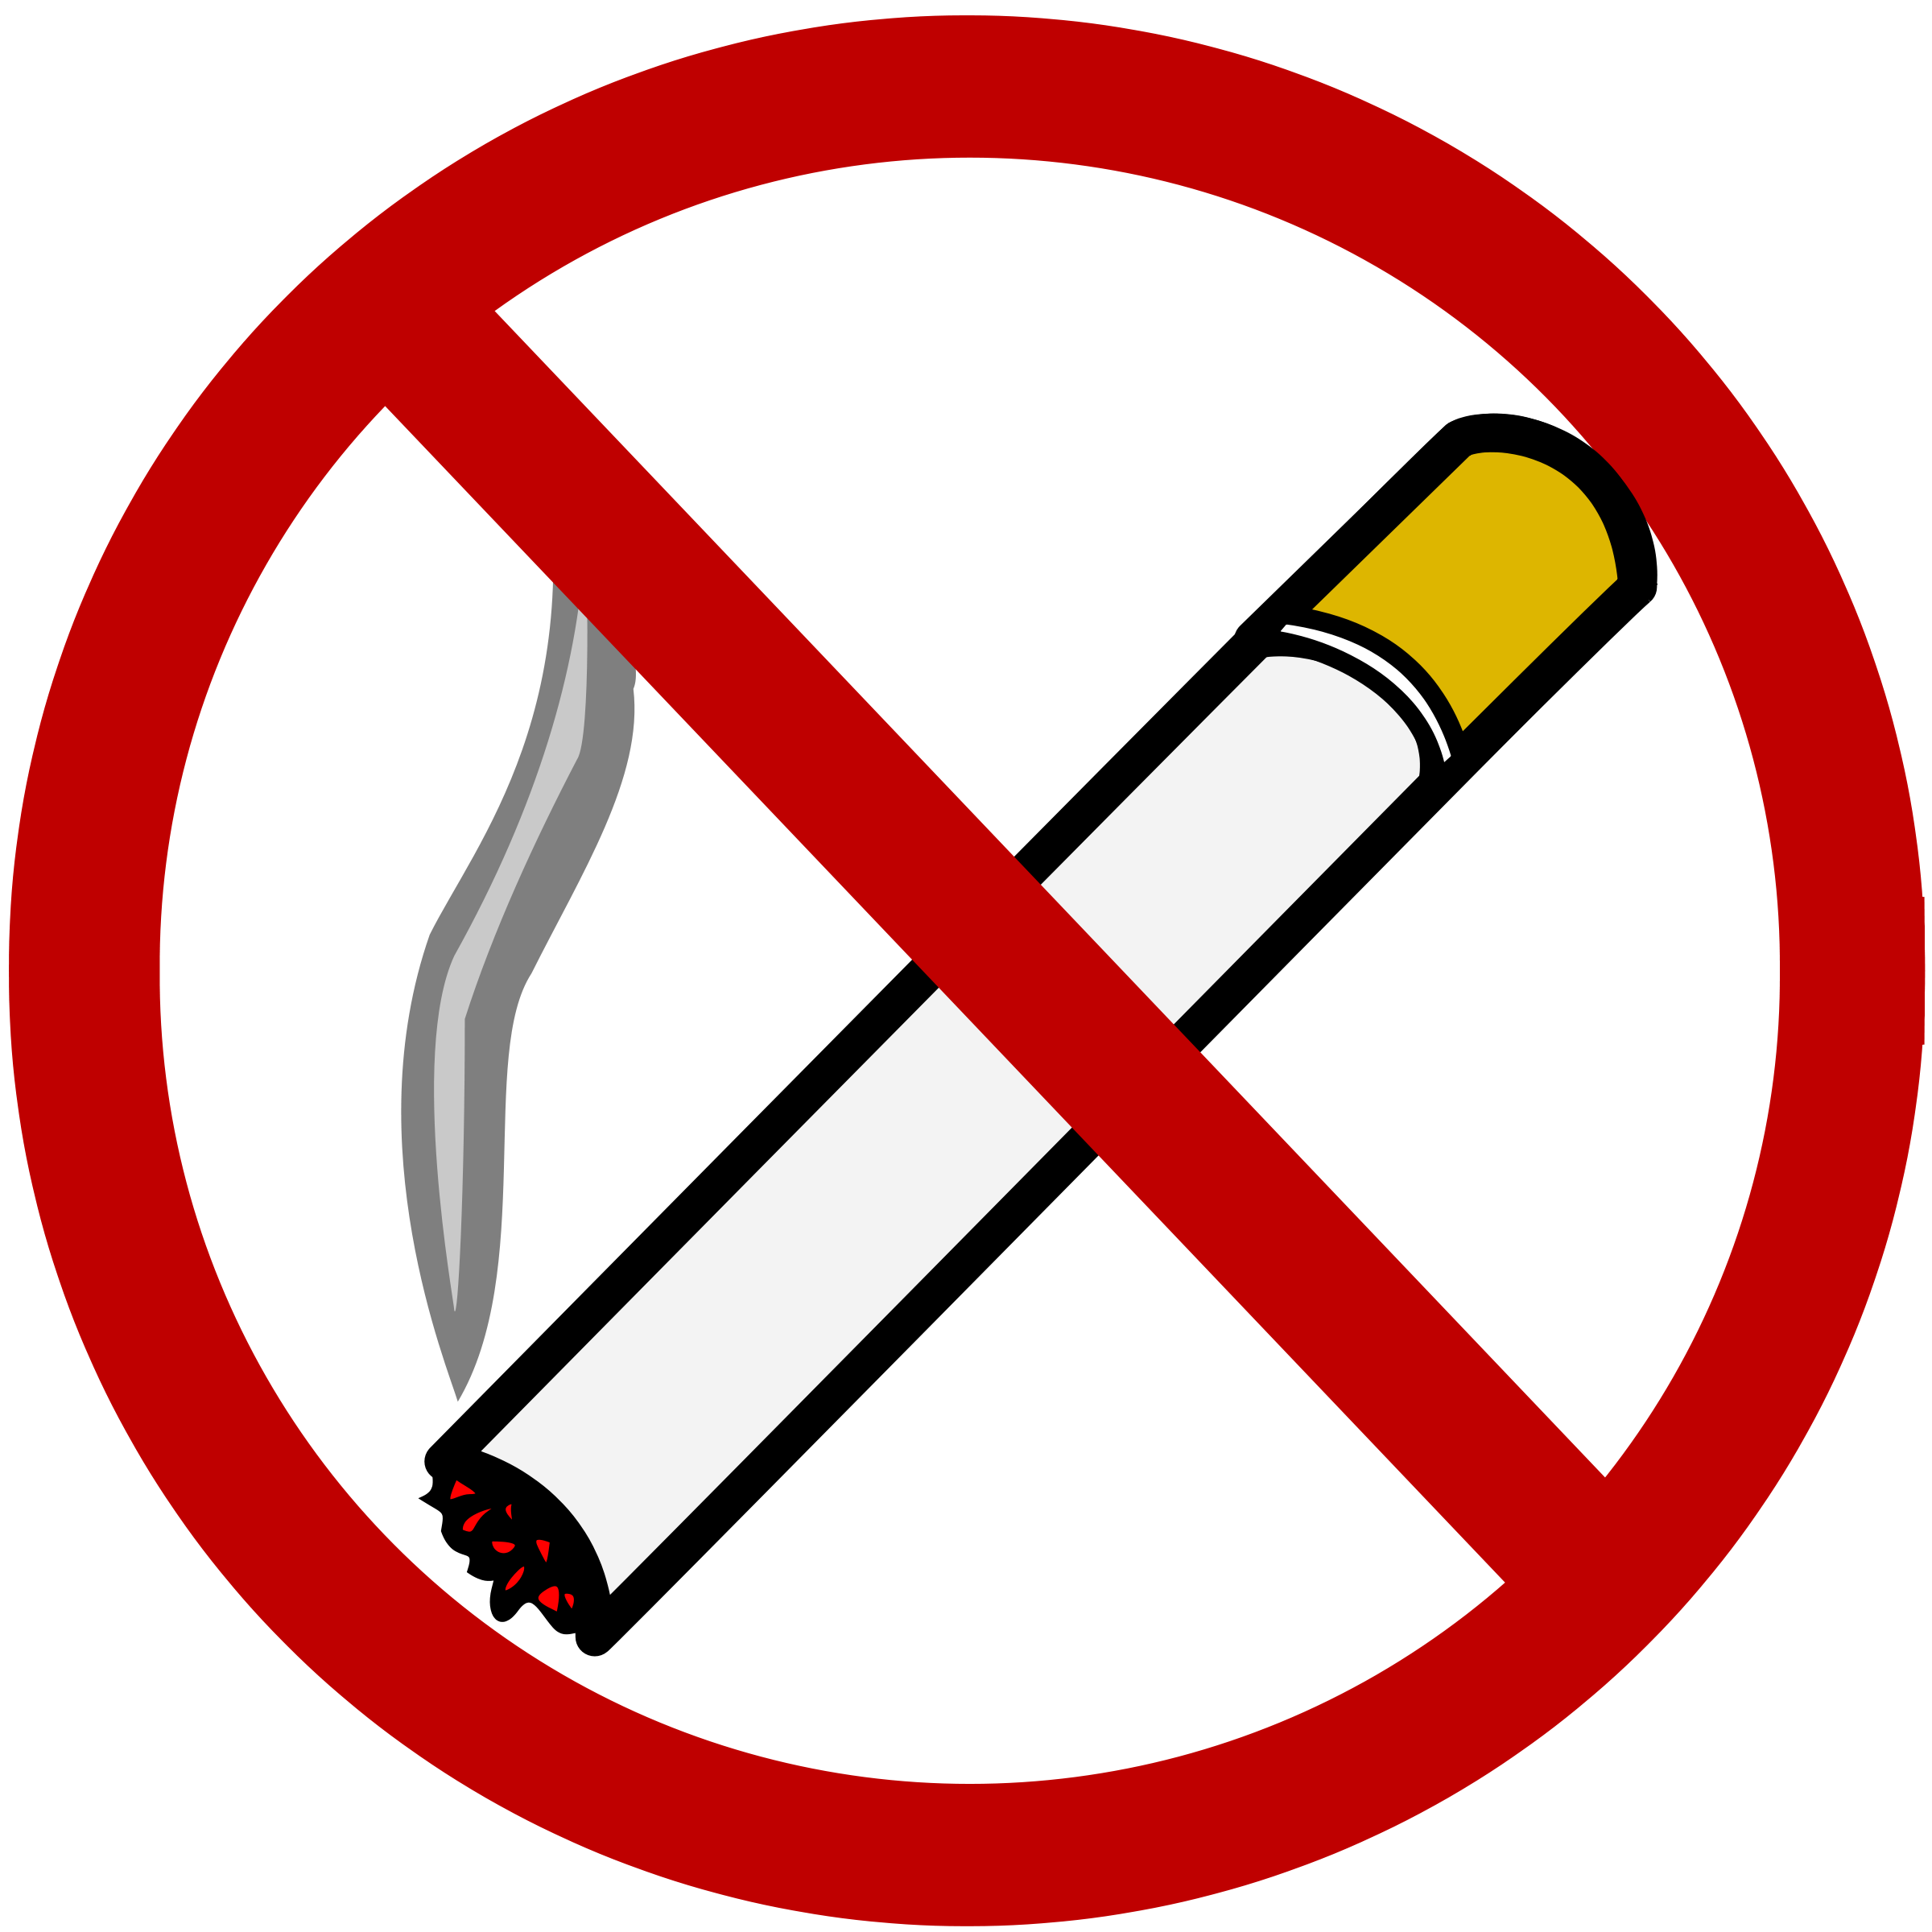 Cigarette clipart #5, Download drawings